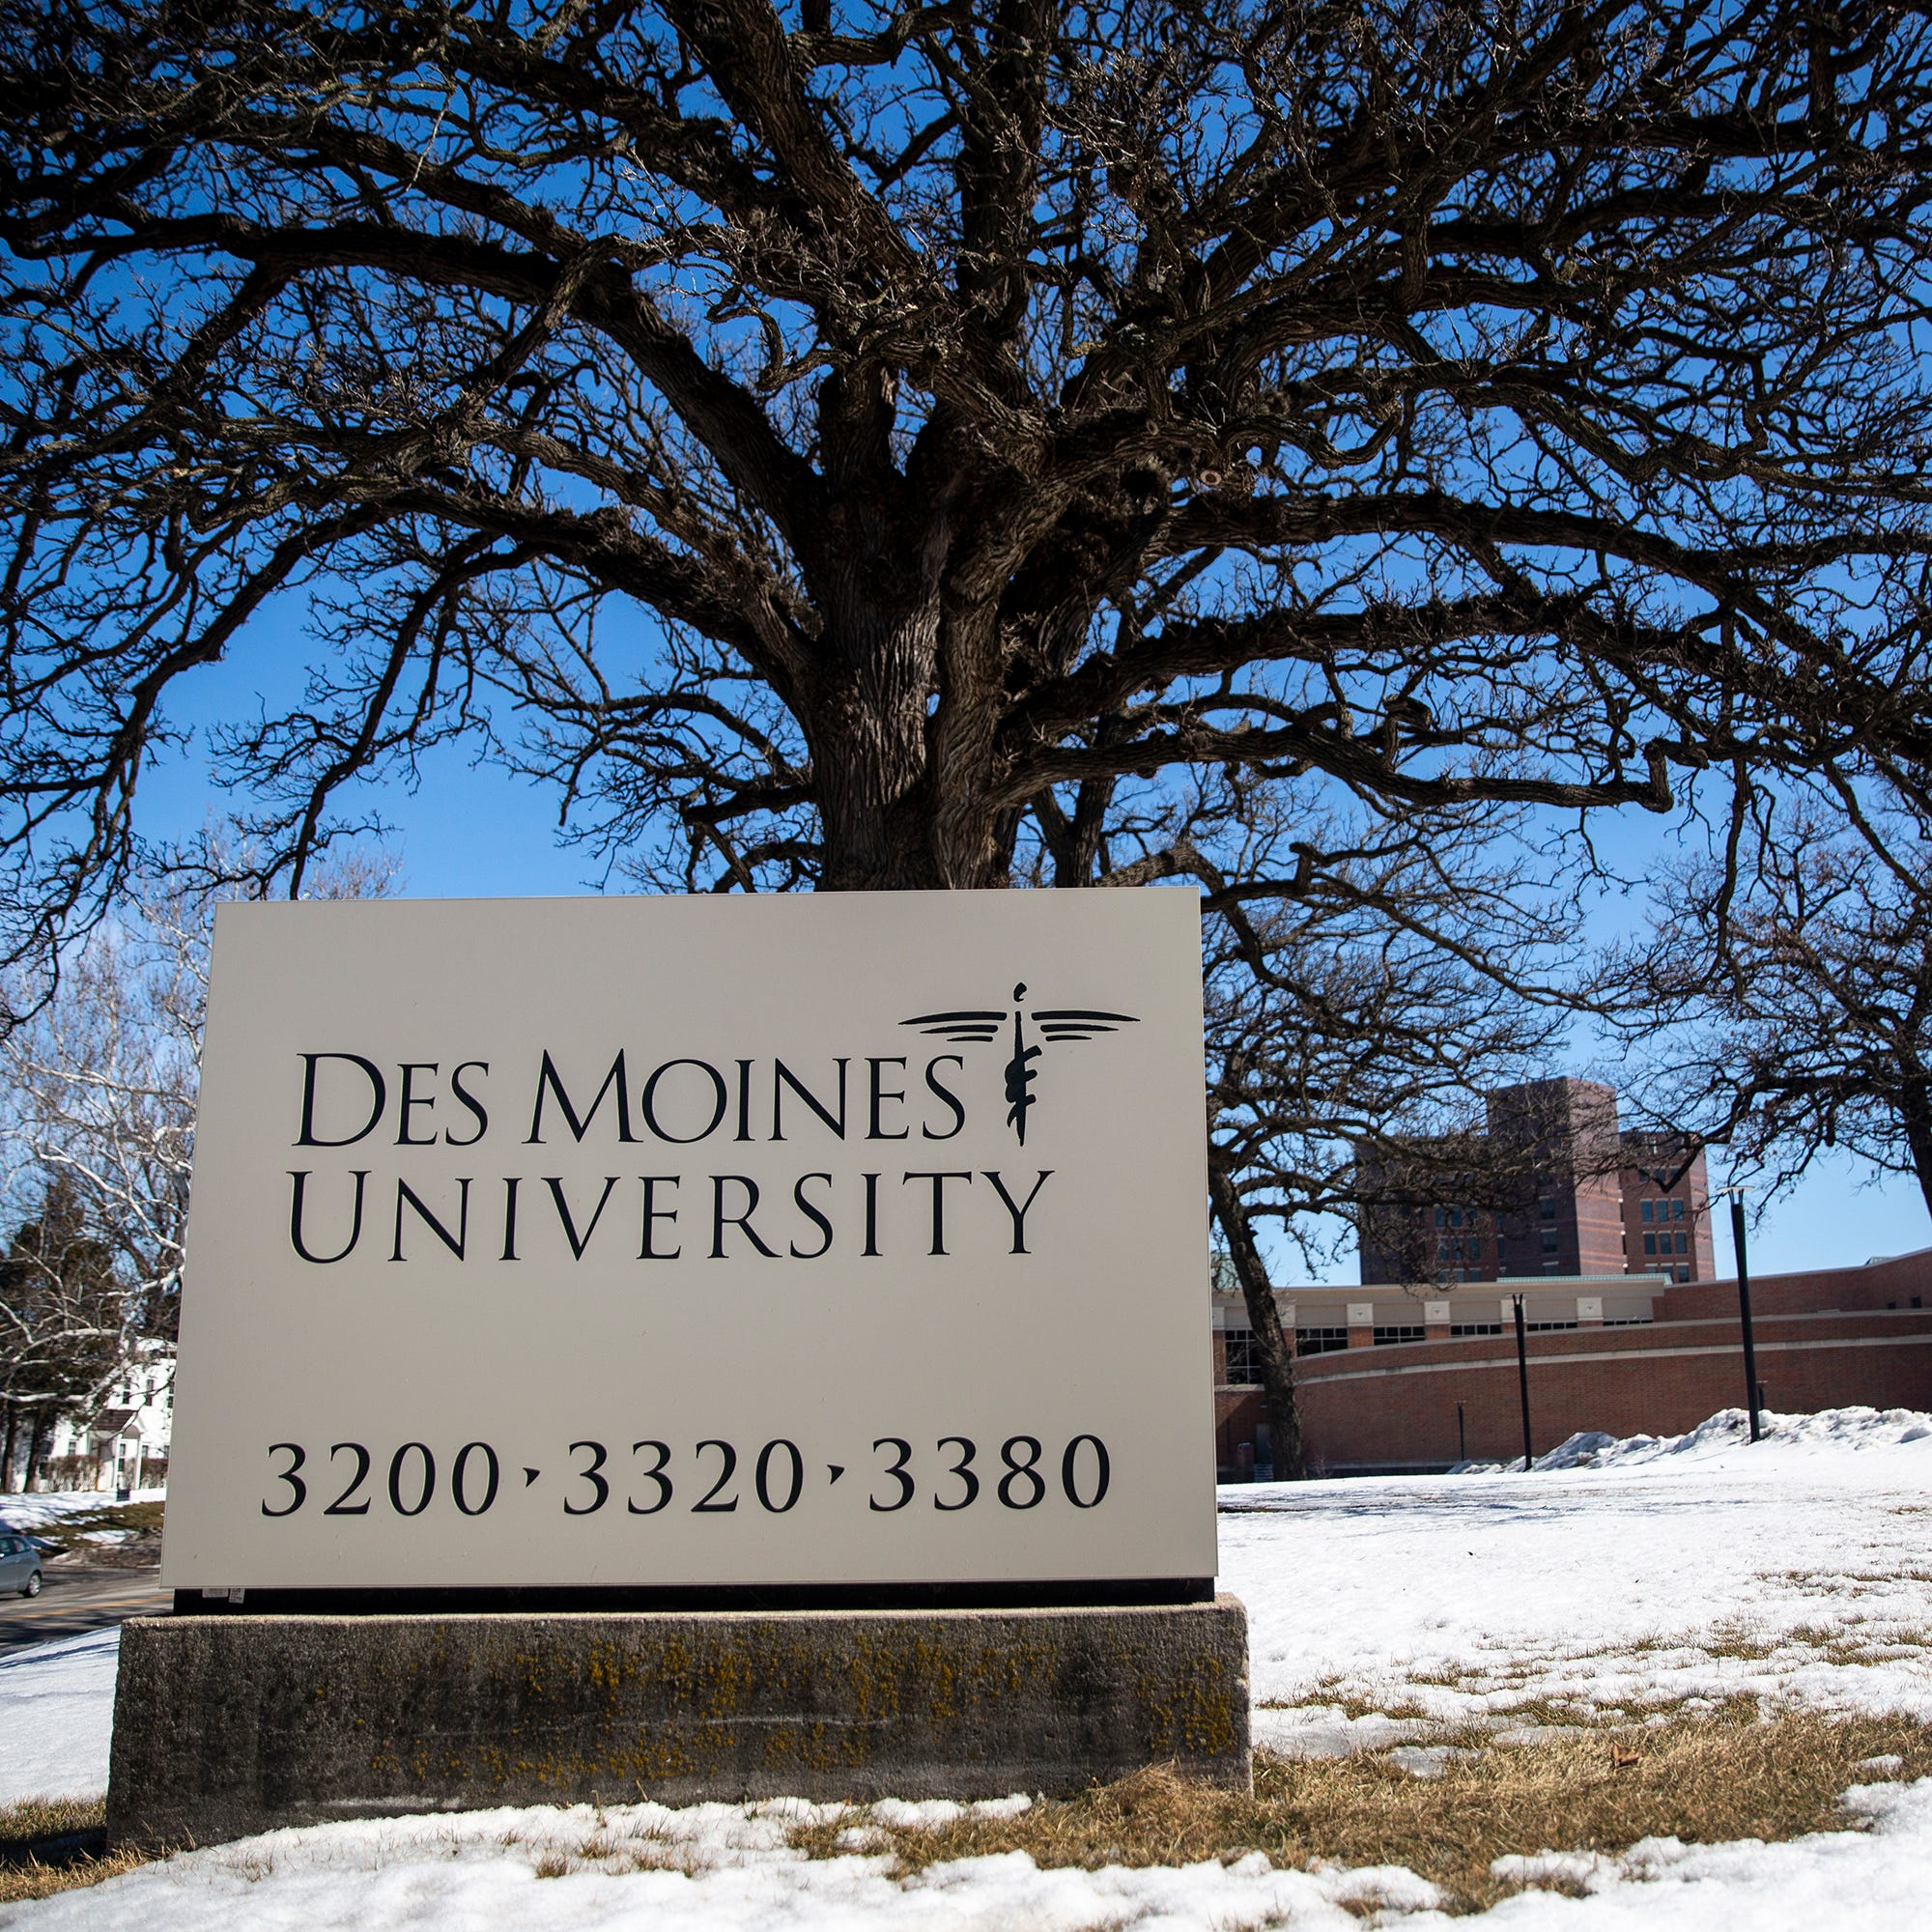 Des Moines University plans relocation to West Des Moines